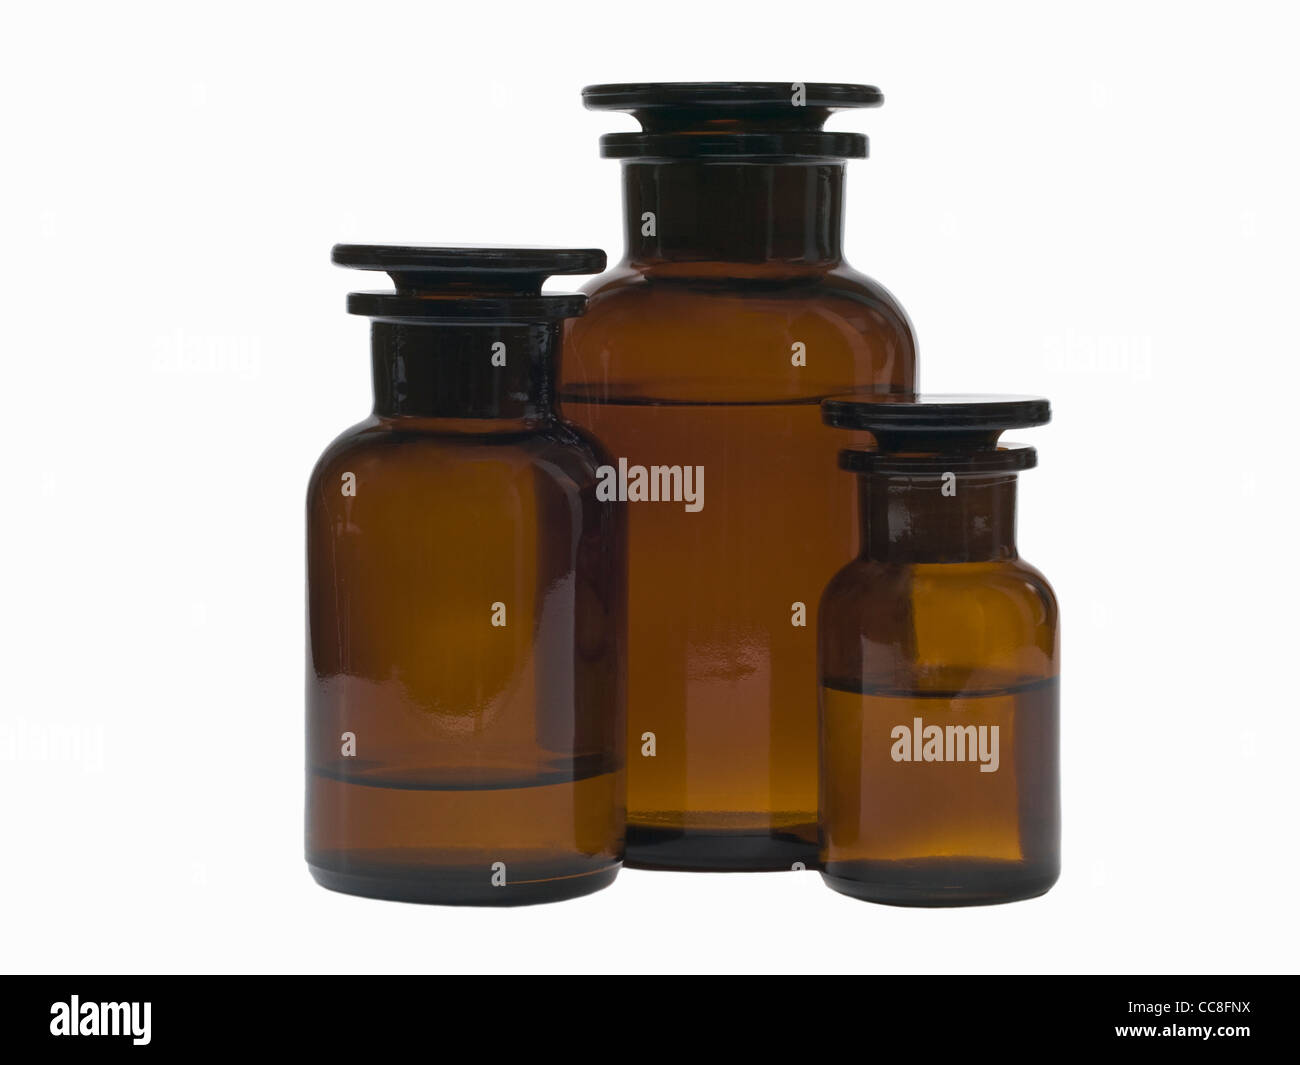 Detail photo of three closed pharmacists bottles - Stock Image